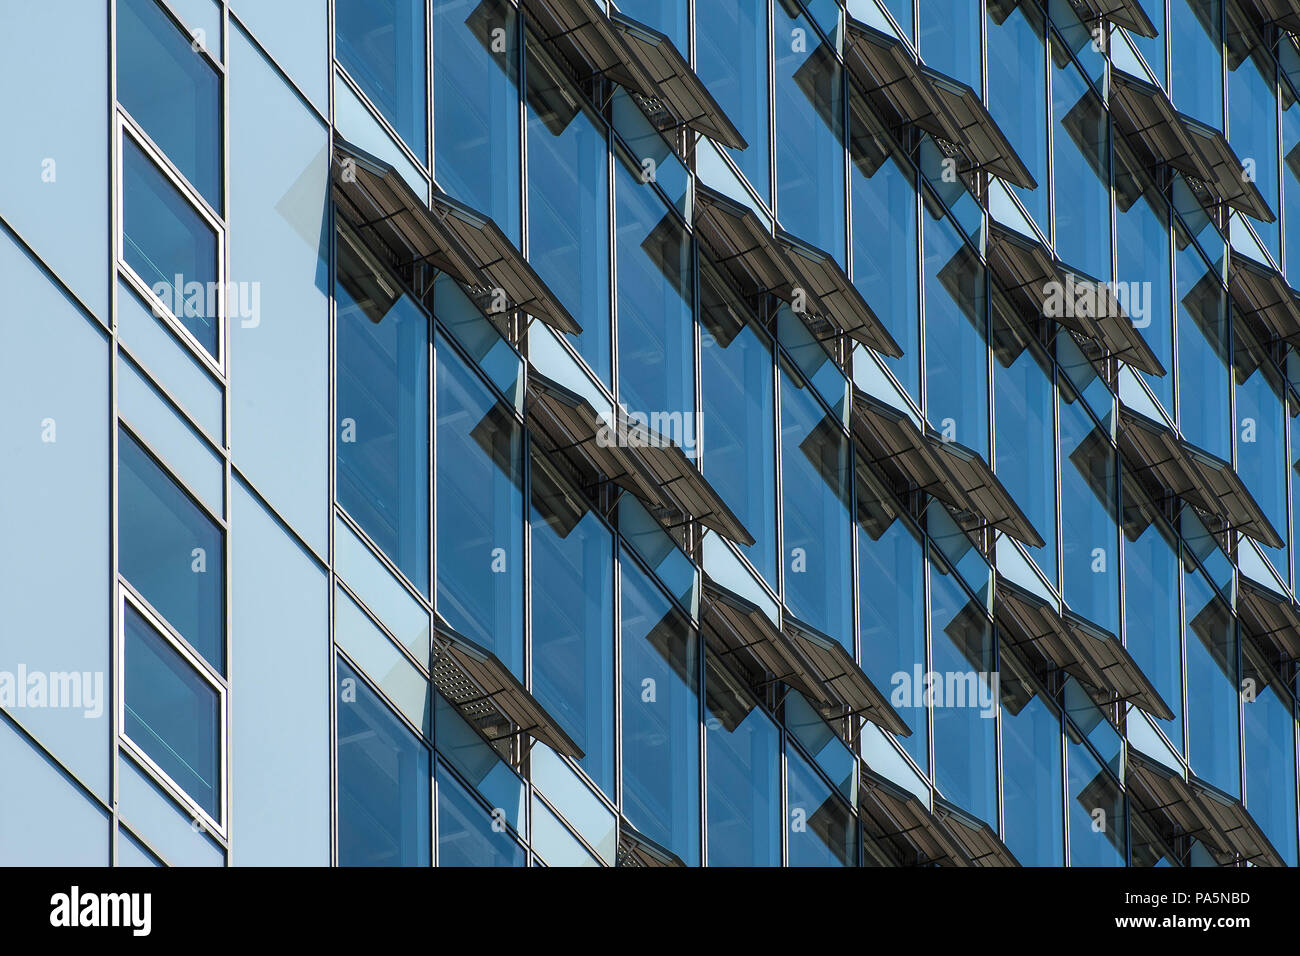 Ventilation flaps on windows in skyscraper facade, Munich, Upper Bavaria, Bavaria, Germany - Stock Image